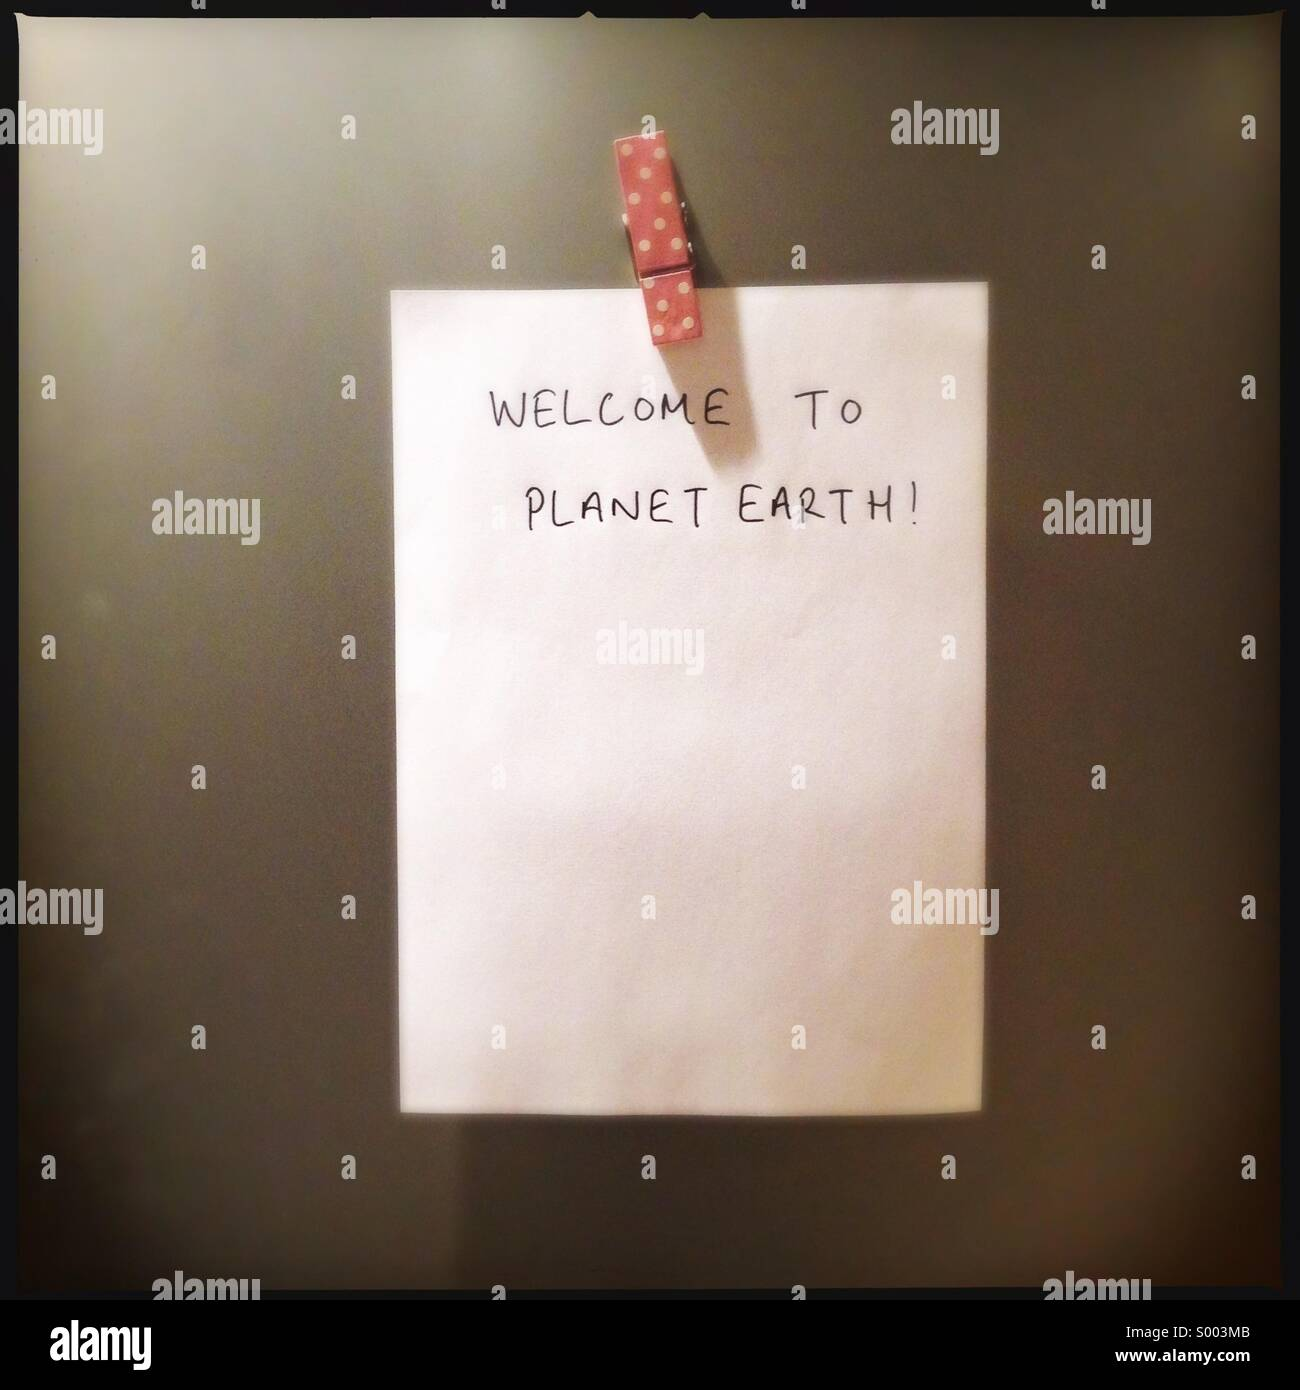 Welcome to Planet Earth! - Stock Image